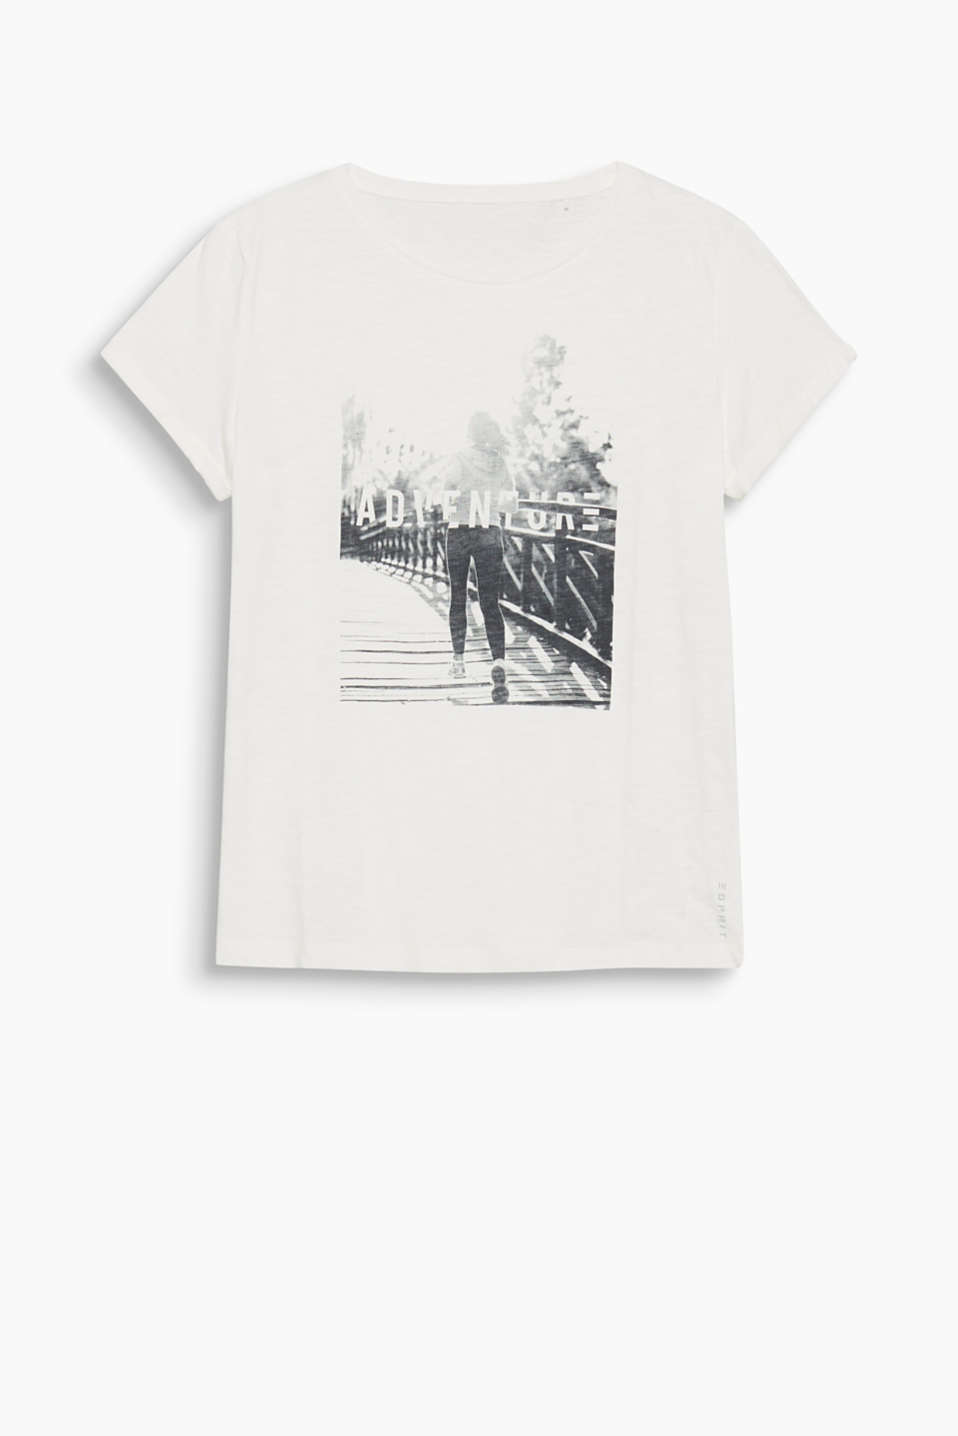 This airy slub t-shirt with a stylish photo print is perfect for both sports and leisure time!